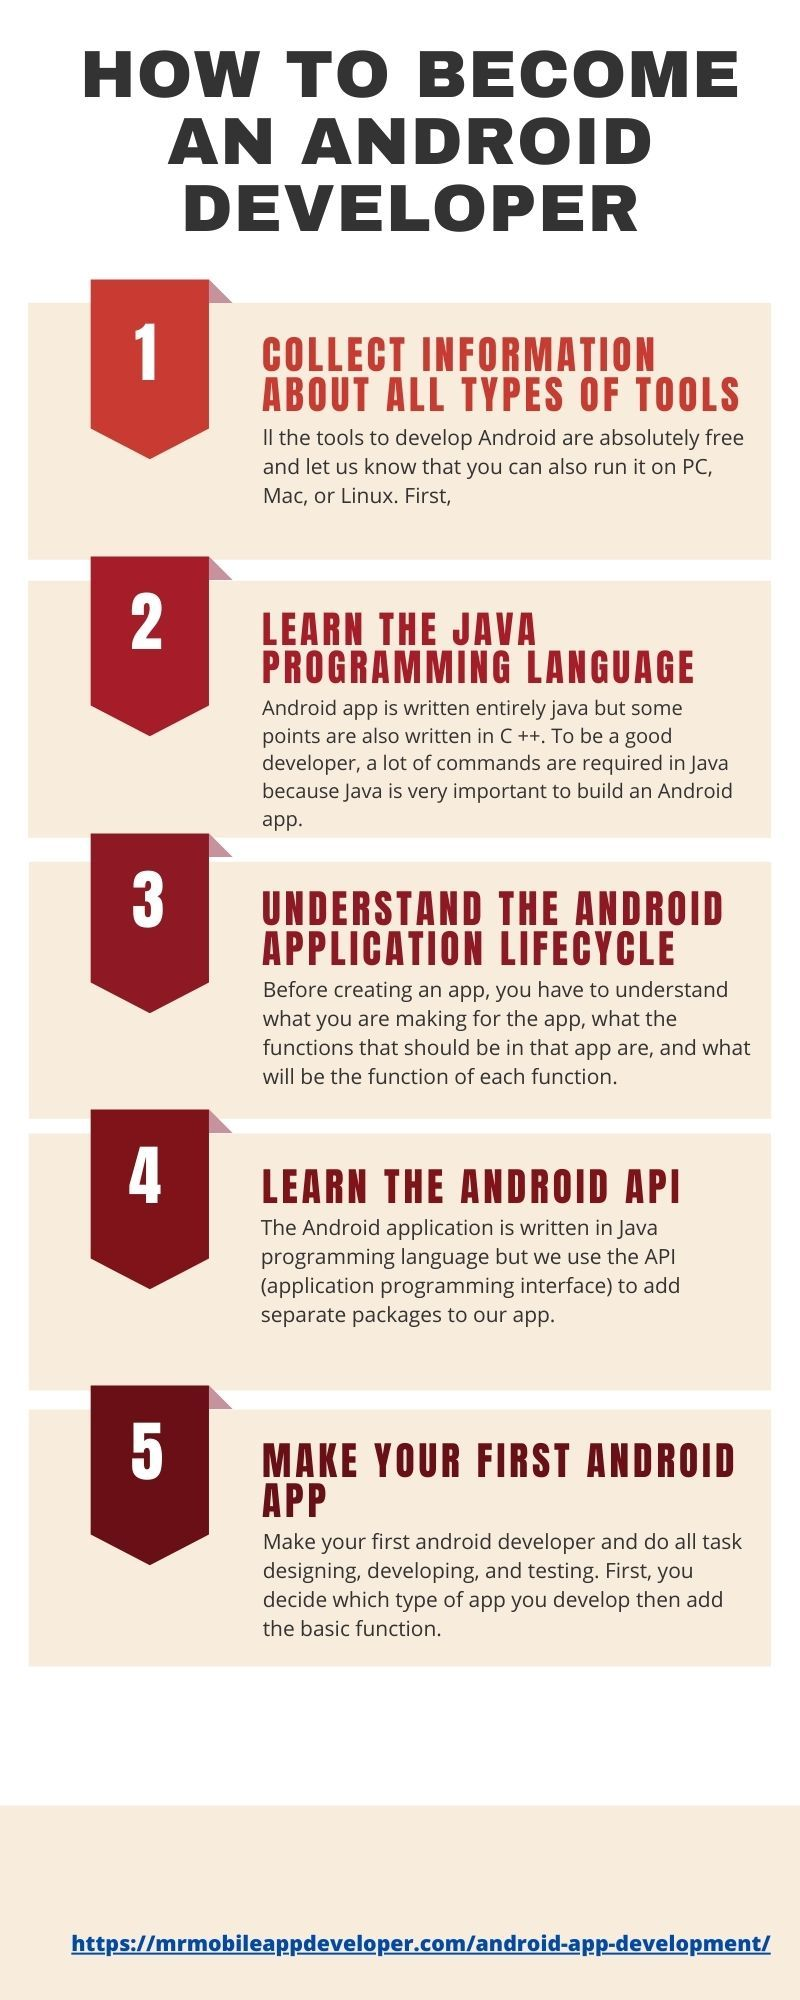 How To Become An Android Developer In 2020 Android Developer Software Development Kit Application Programming Interface